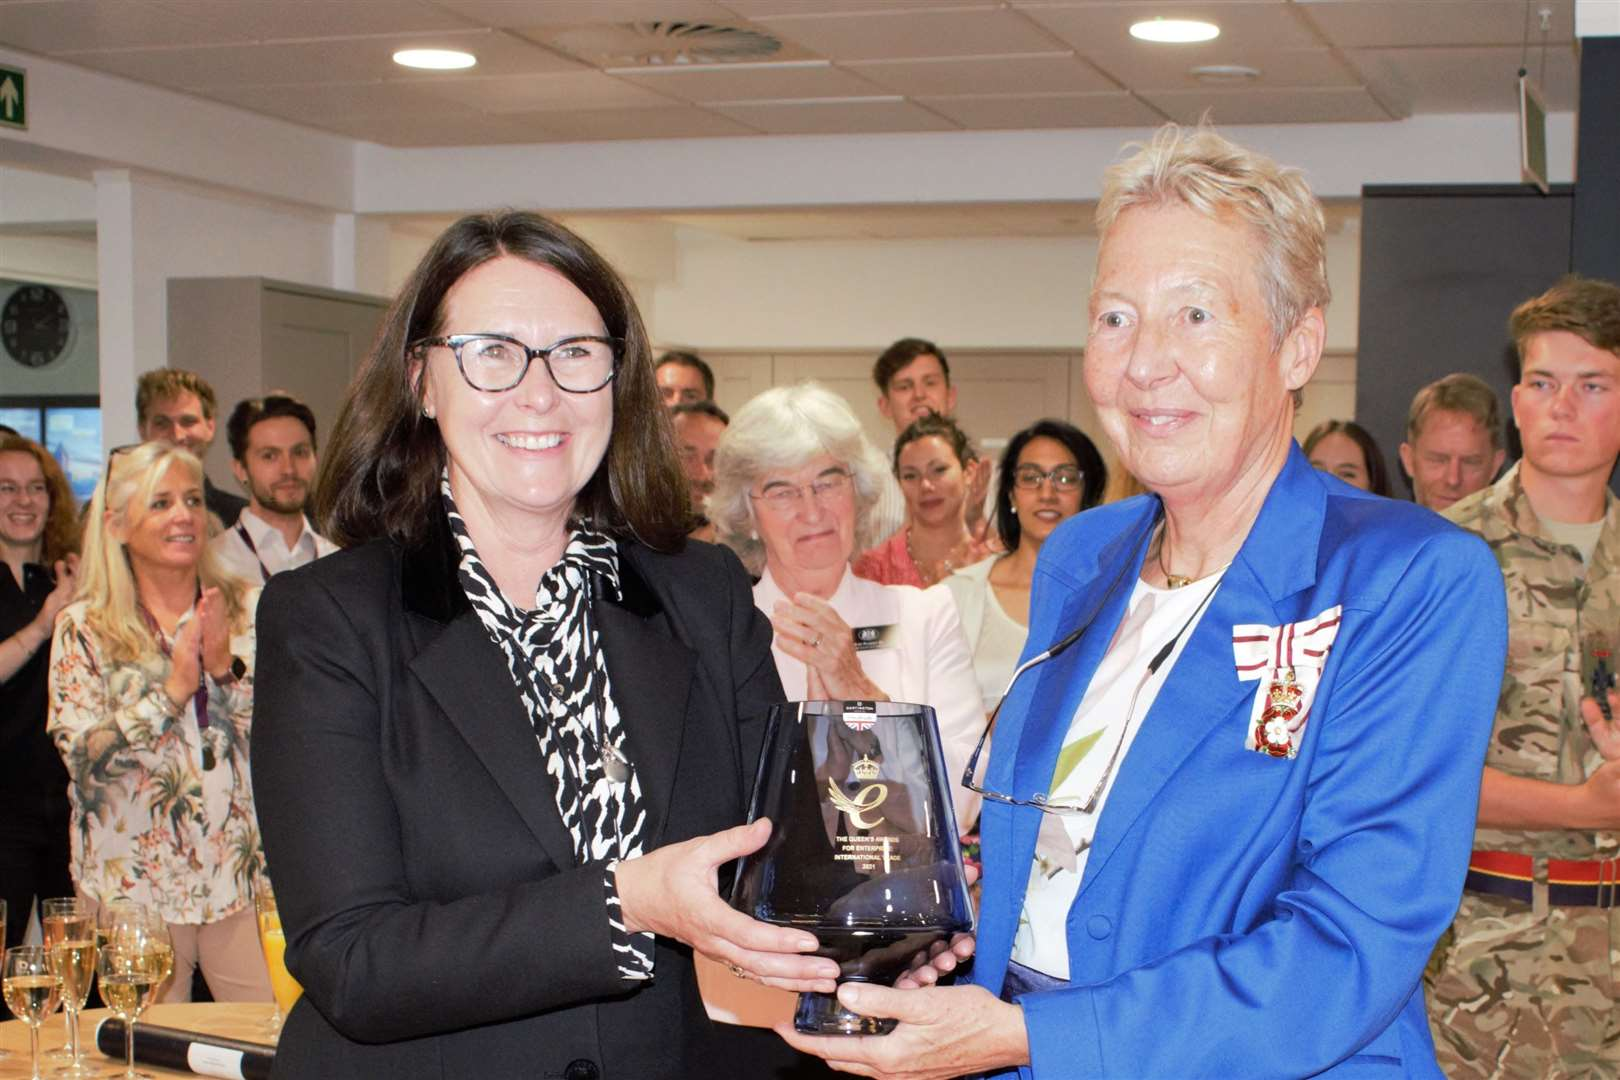 Martina King, CEO of Featurespace, receives the Queen's Award from Lord Lieutenant Julie Spence.  Image: Featurespace